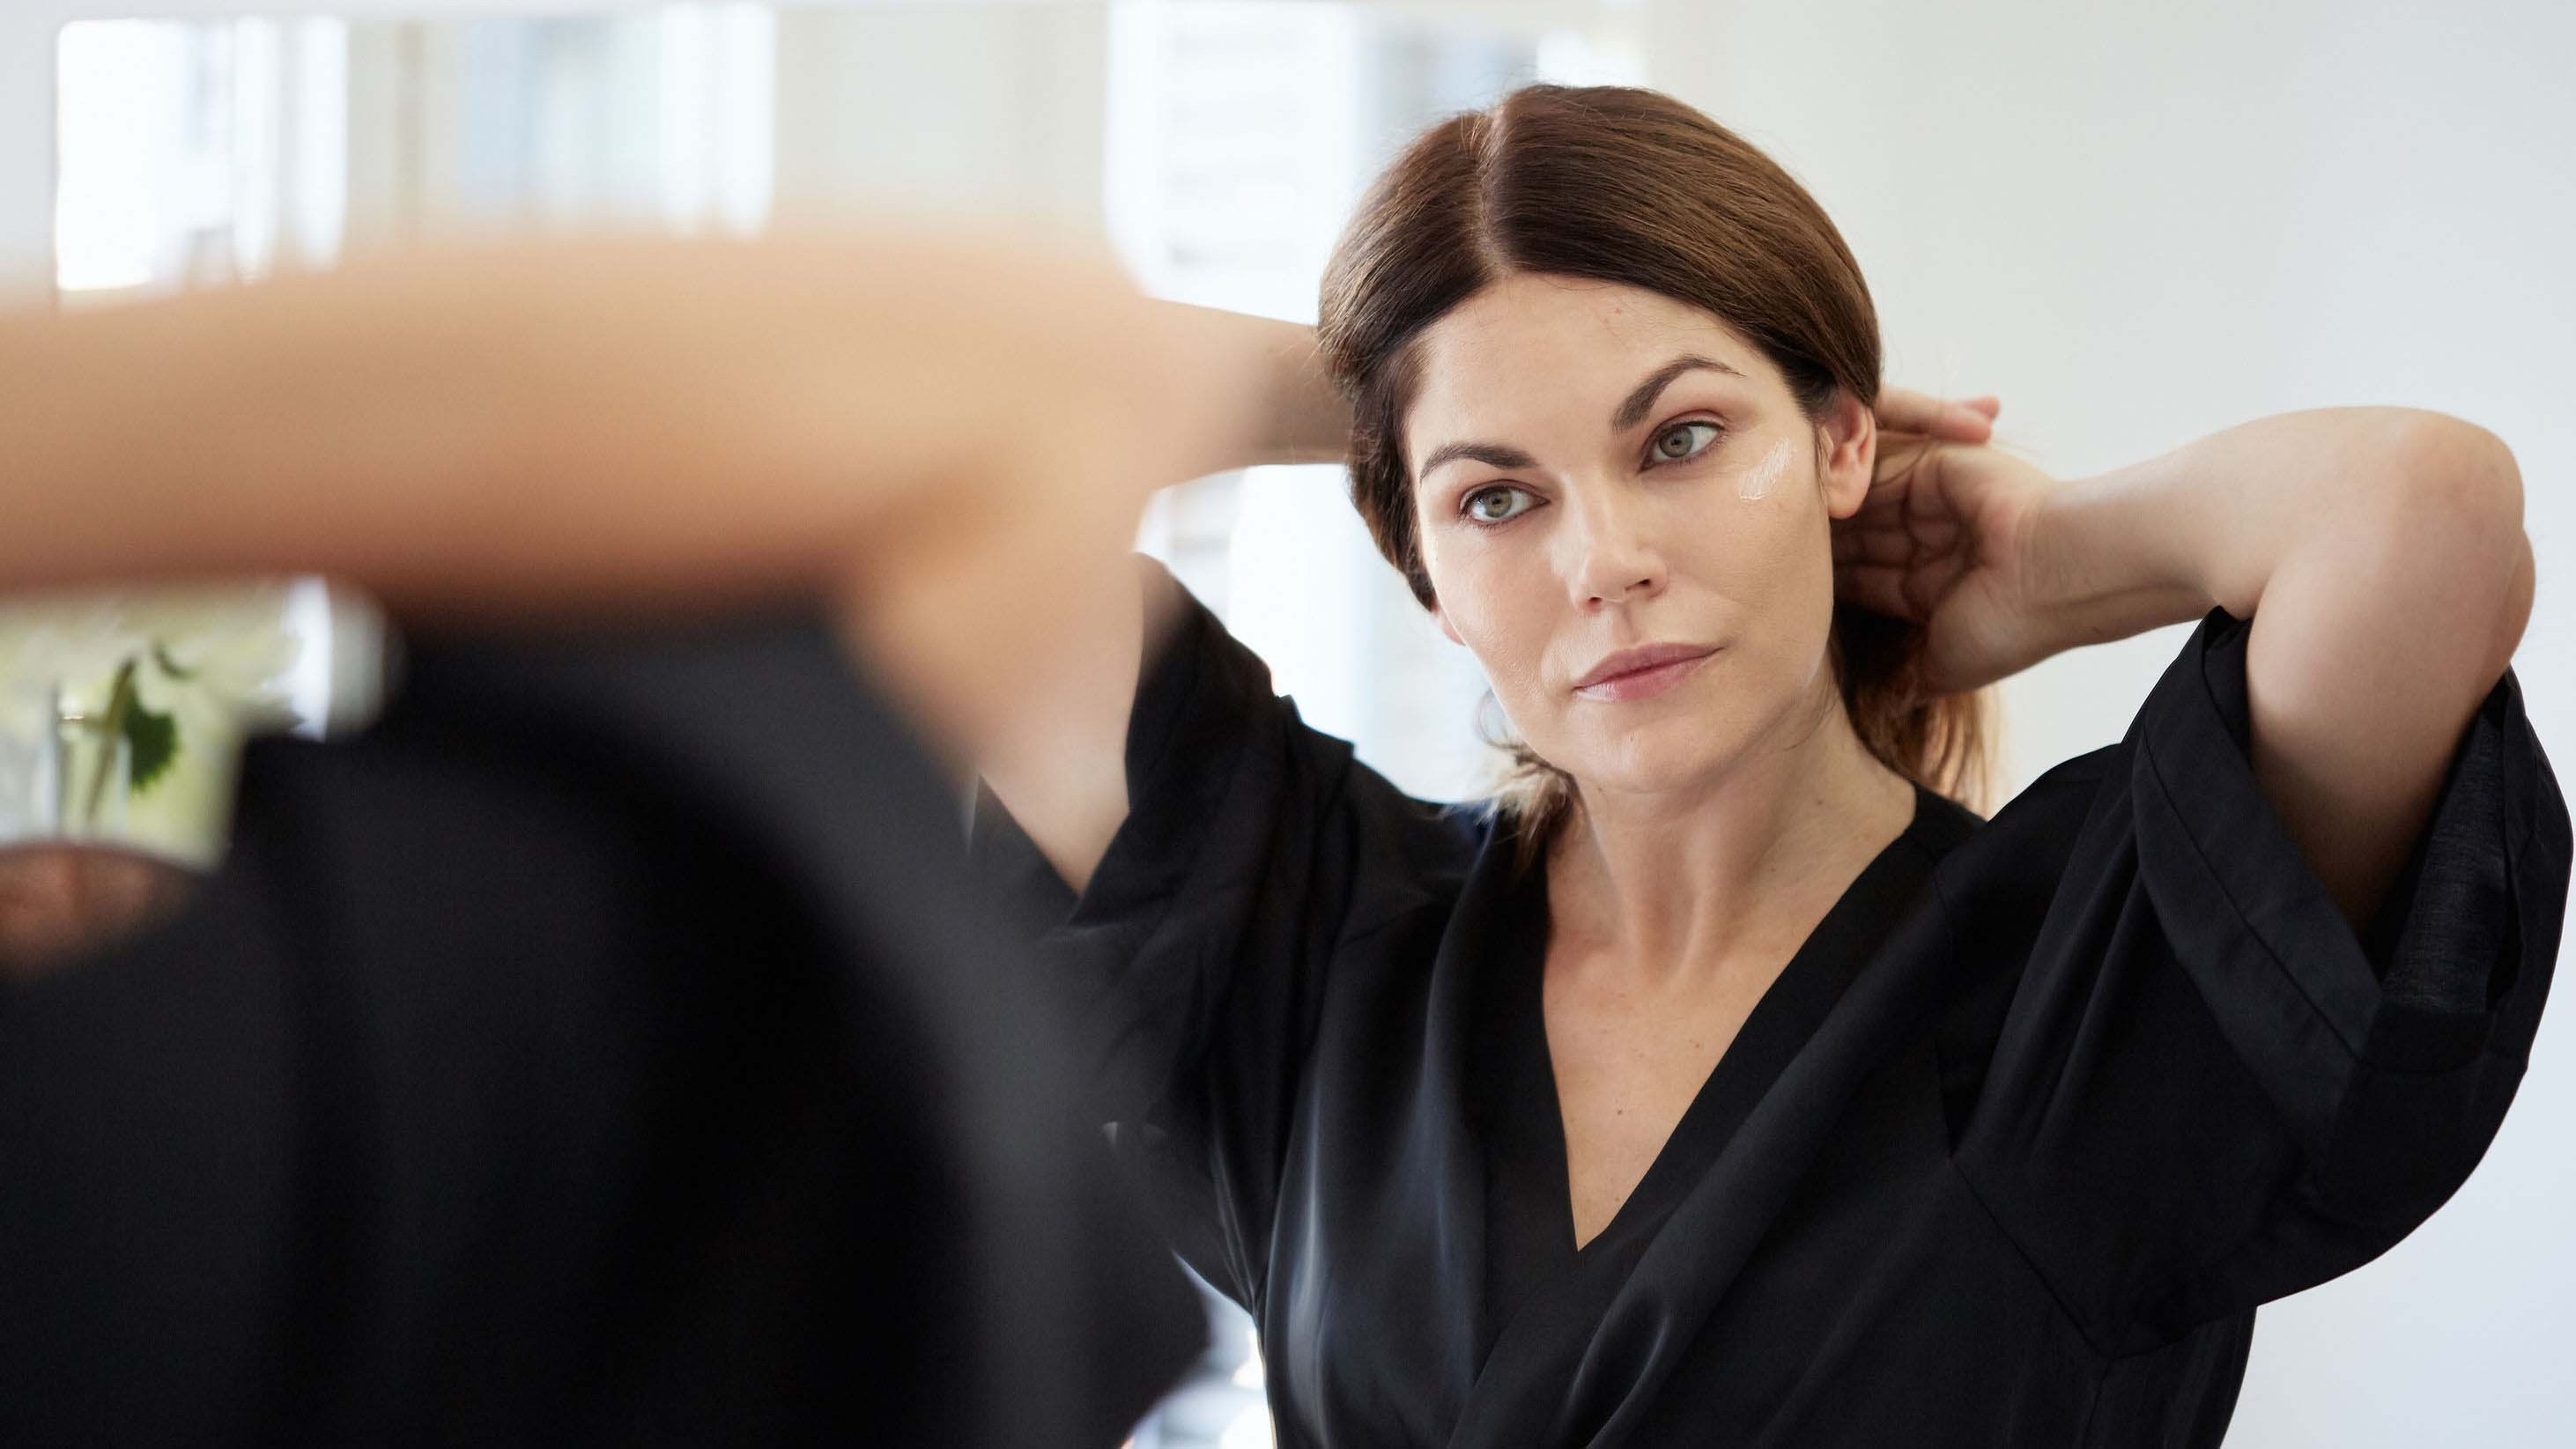 Reasons Your Anti-Aging Skincare Routine Isn't Working